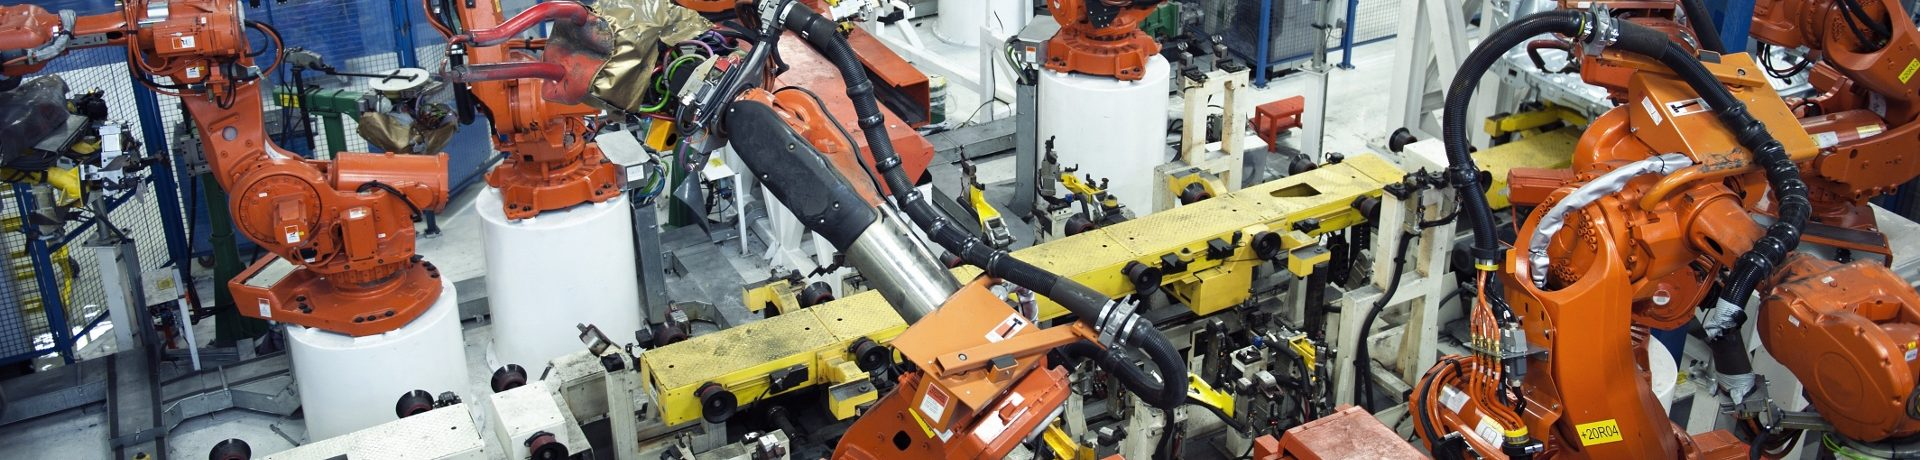 Automation and Industrial Technology Executive Search and